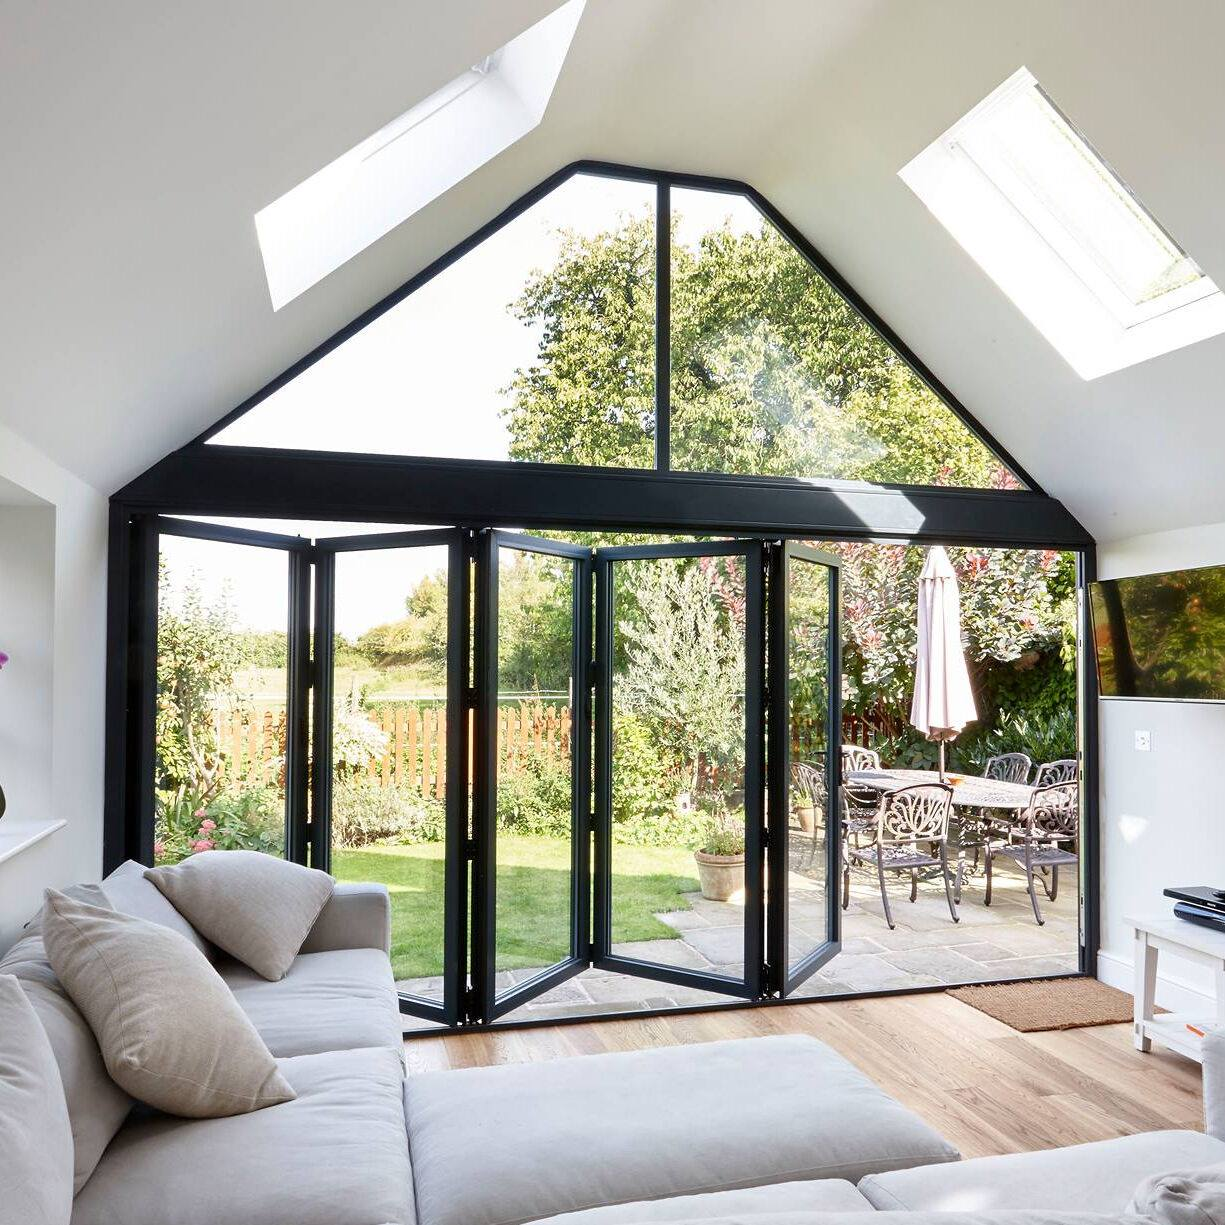 What Furniture Do You Need To Have In Your Home Extension In Northampton?